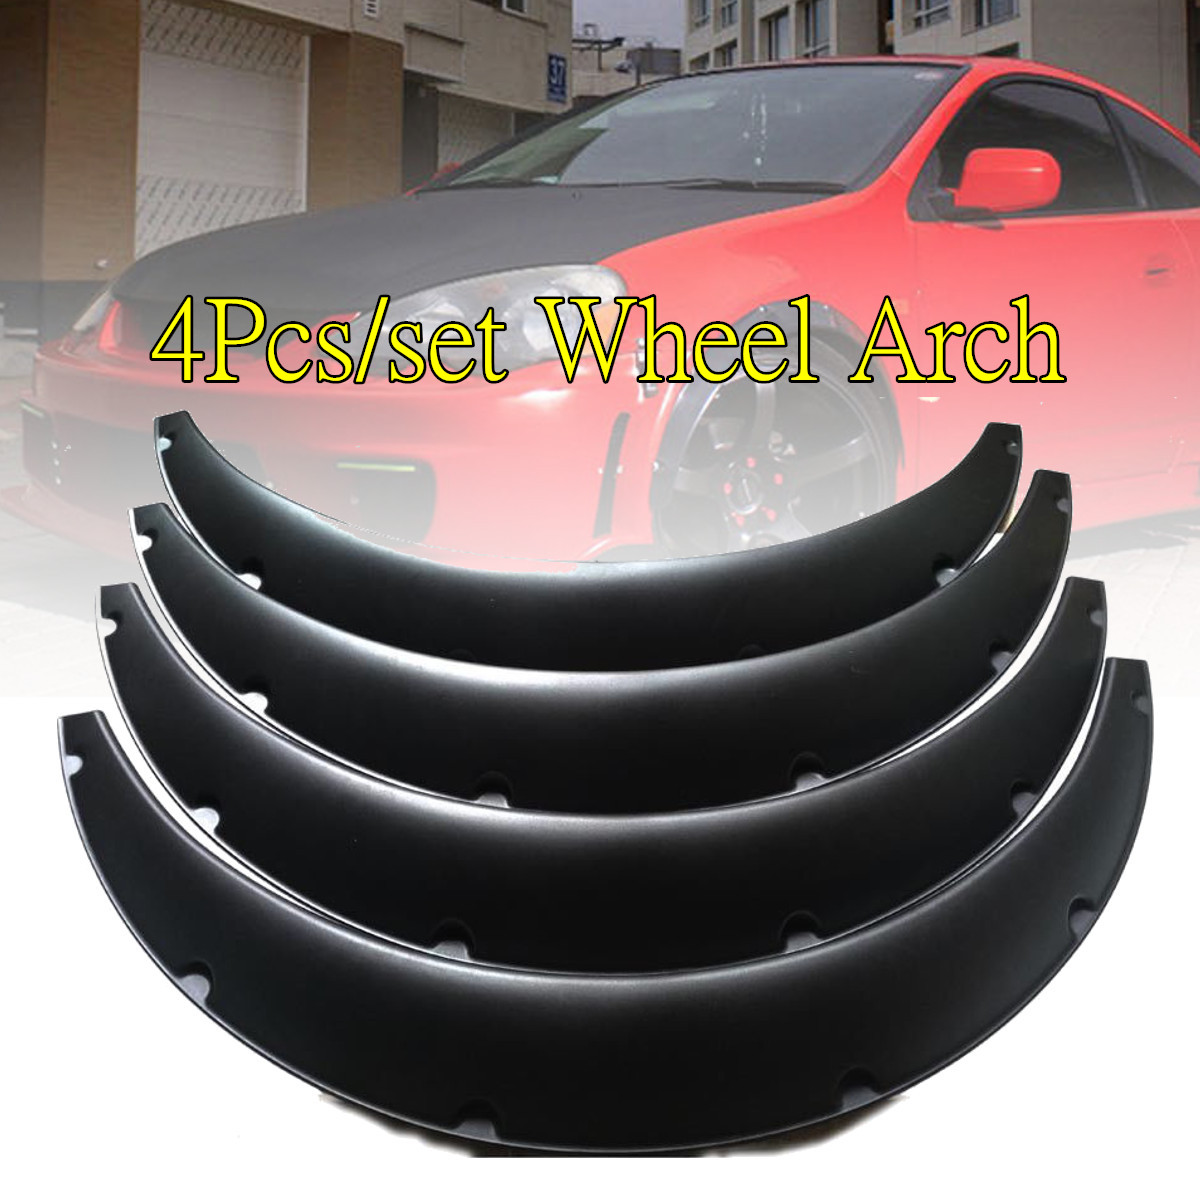 4PCS 3.5/90mm Universal Flexible Car Fenders Mudguard Flares Extra Wide Body Wheel Arches Auto Replacement Exterior Parts Black